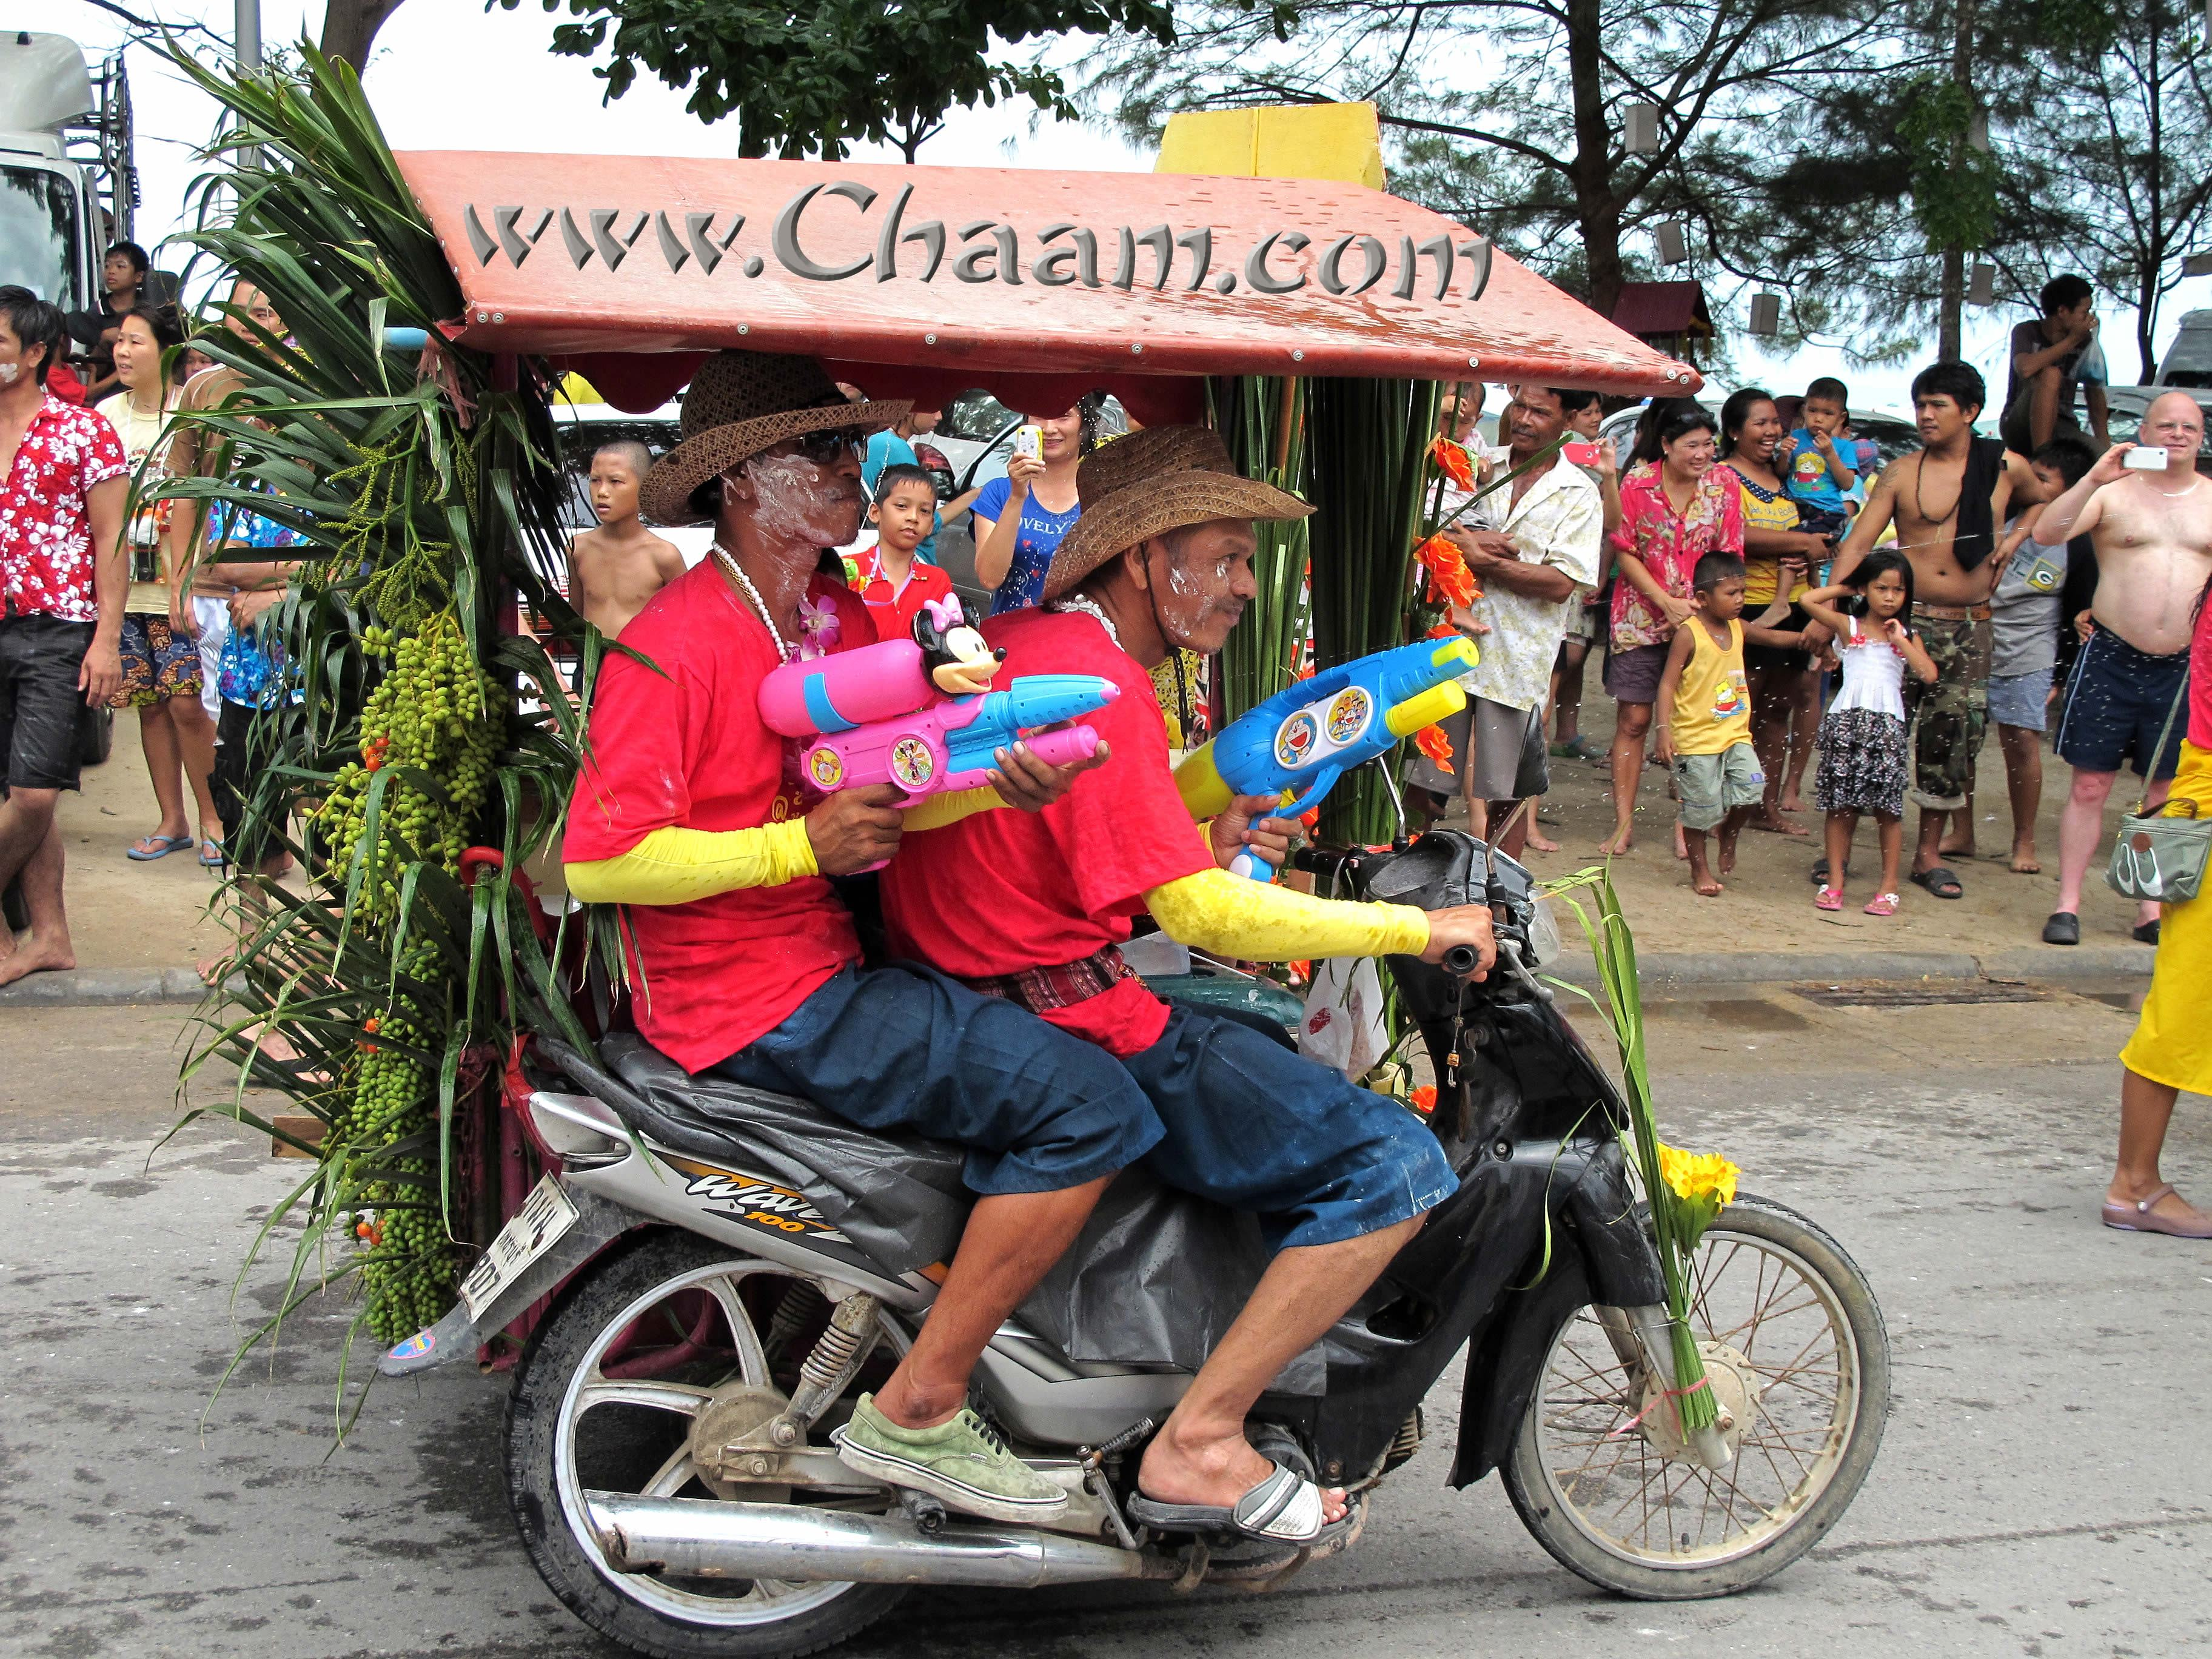 Farmers on motorbike in Cha-Am Thailand